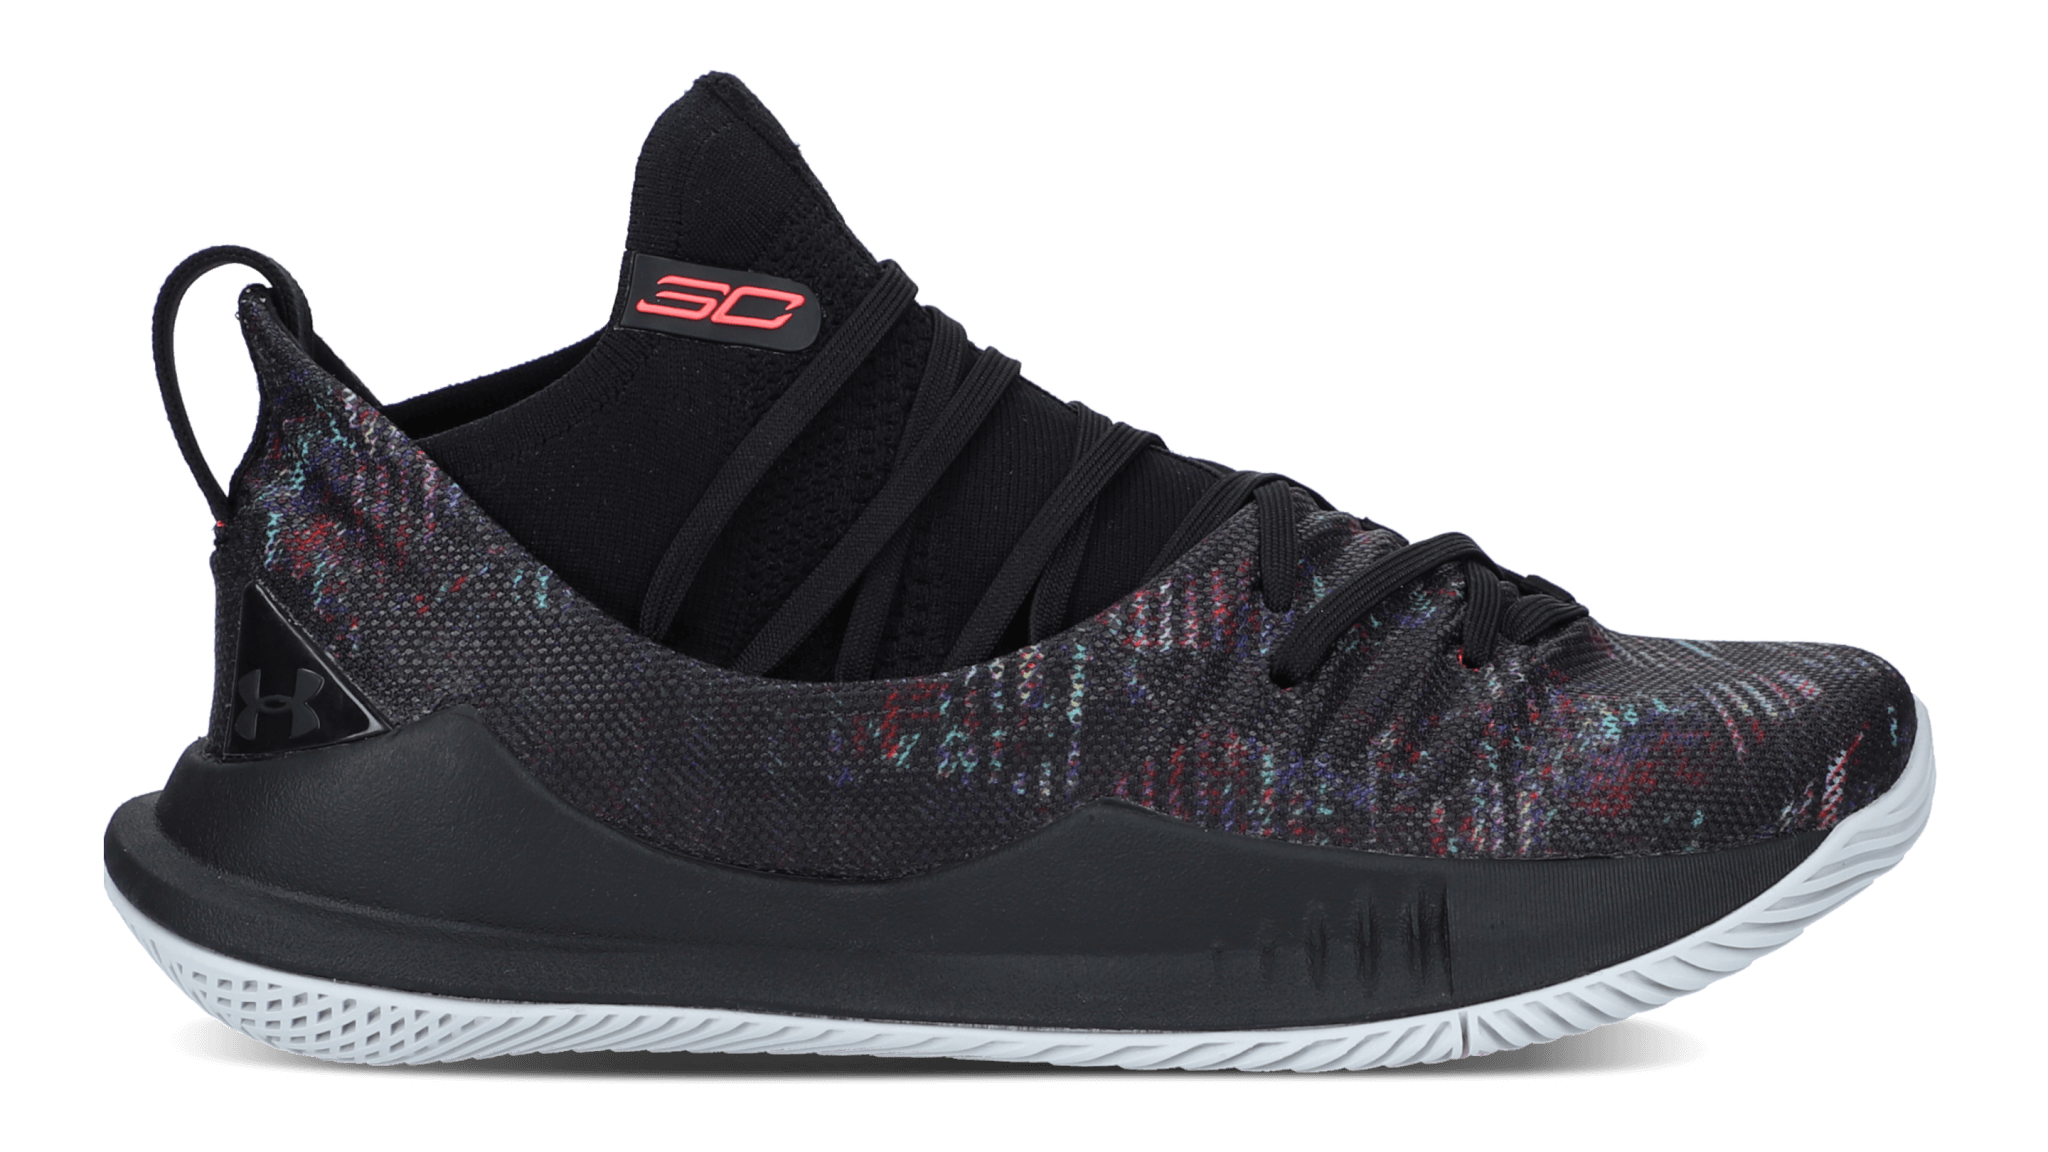 9f53b085616fc Under Armour Curry 5 Performance Review